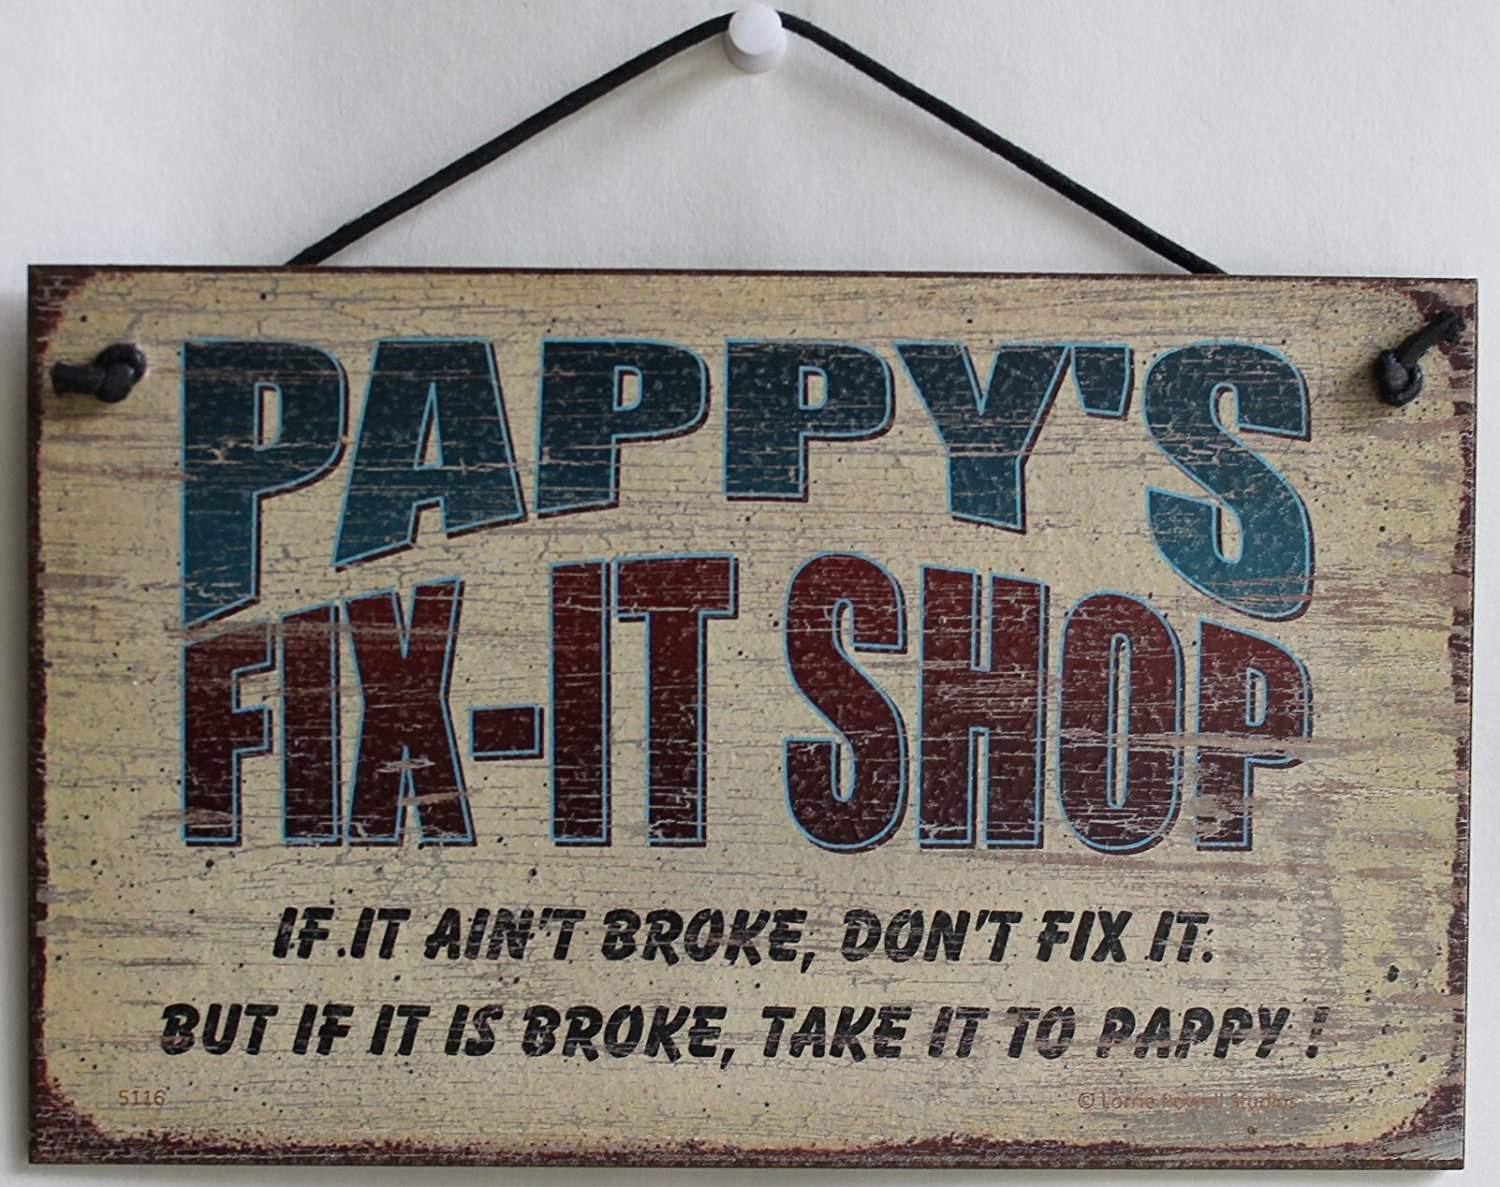 Decorative Fun Universal Household Signs from Egberts Treasures don/'t fix it But if it is broke Egbert/'s Treasures 5106-58 dont fix it But if it is broke take it to POP 5x8 Fix-It Shop Sign Saying POPS FIX-IT SHOP If it aint broke